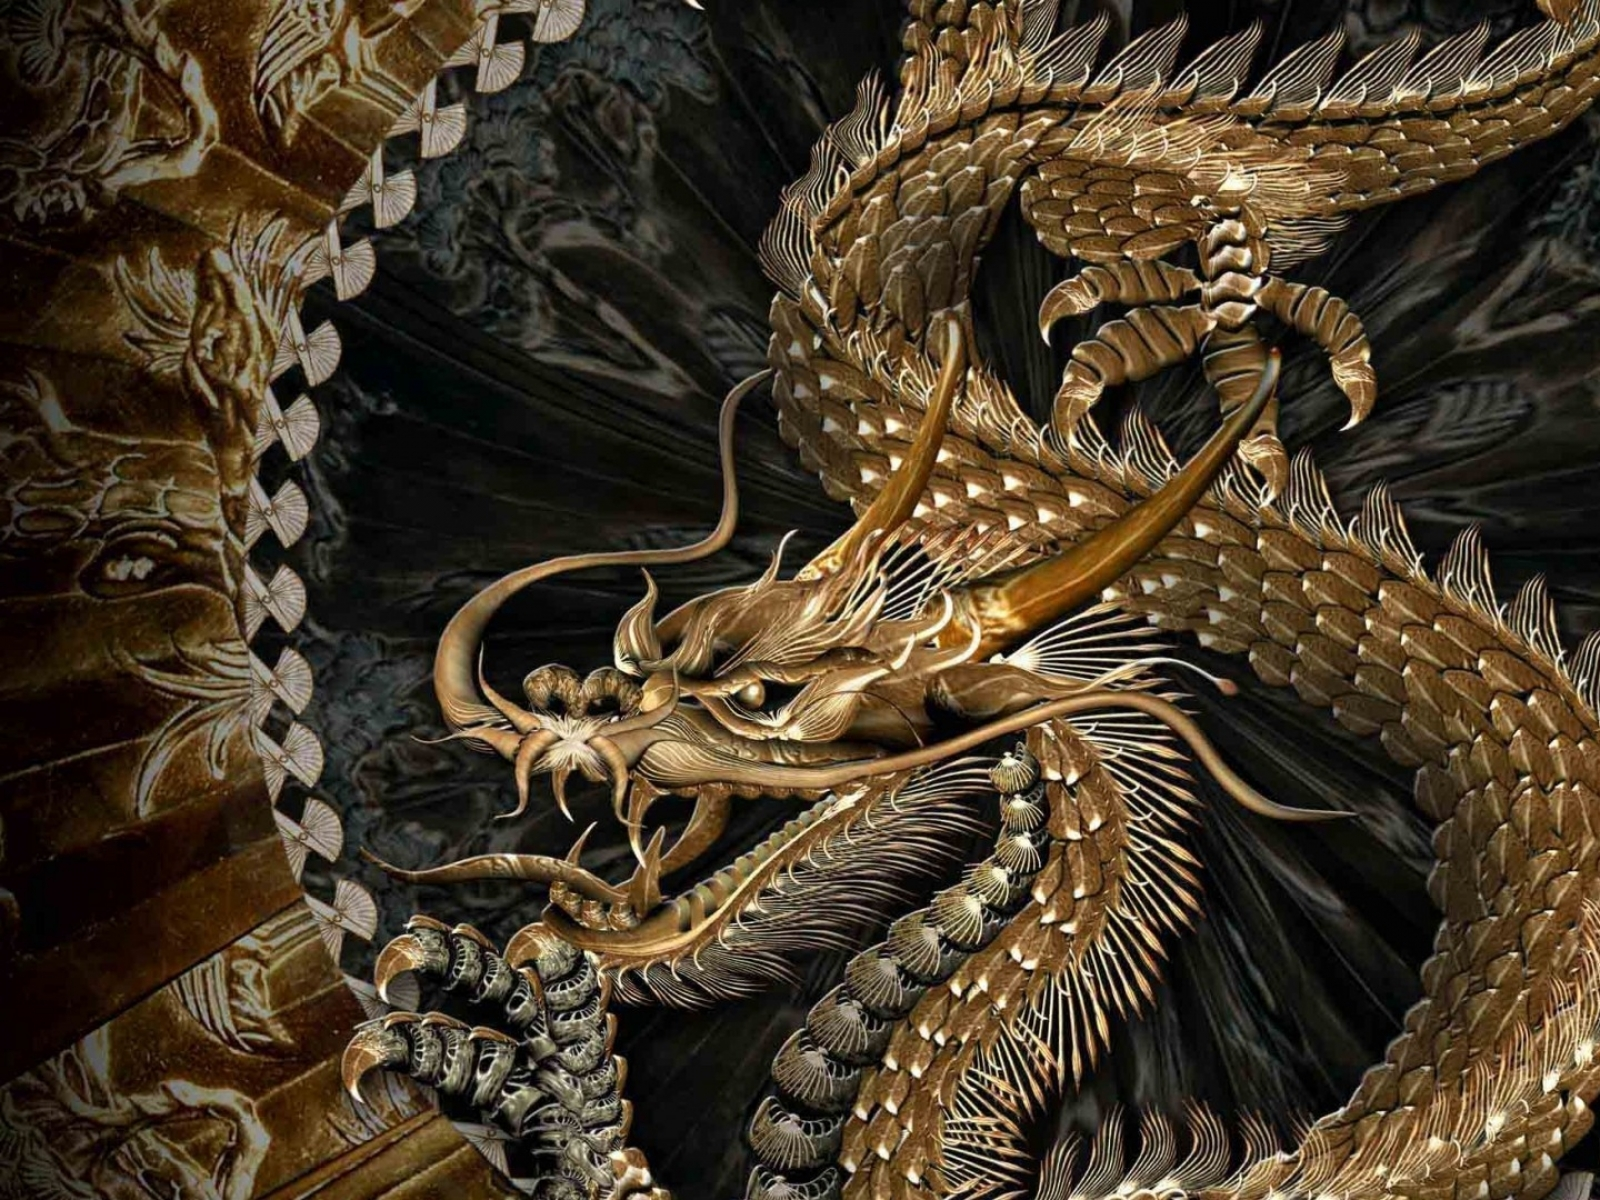 Top 50 hd dragon wallpapers images backgrounds desktop - Ancient chinese art wallpaper ...